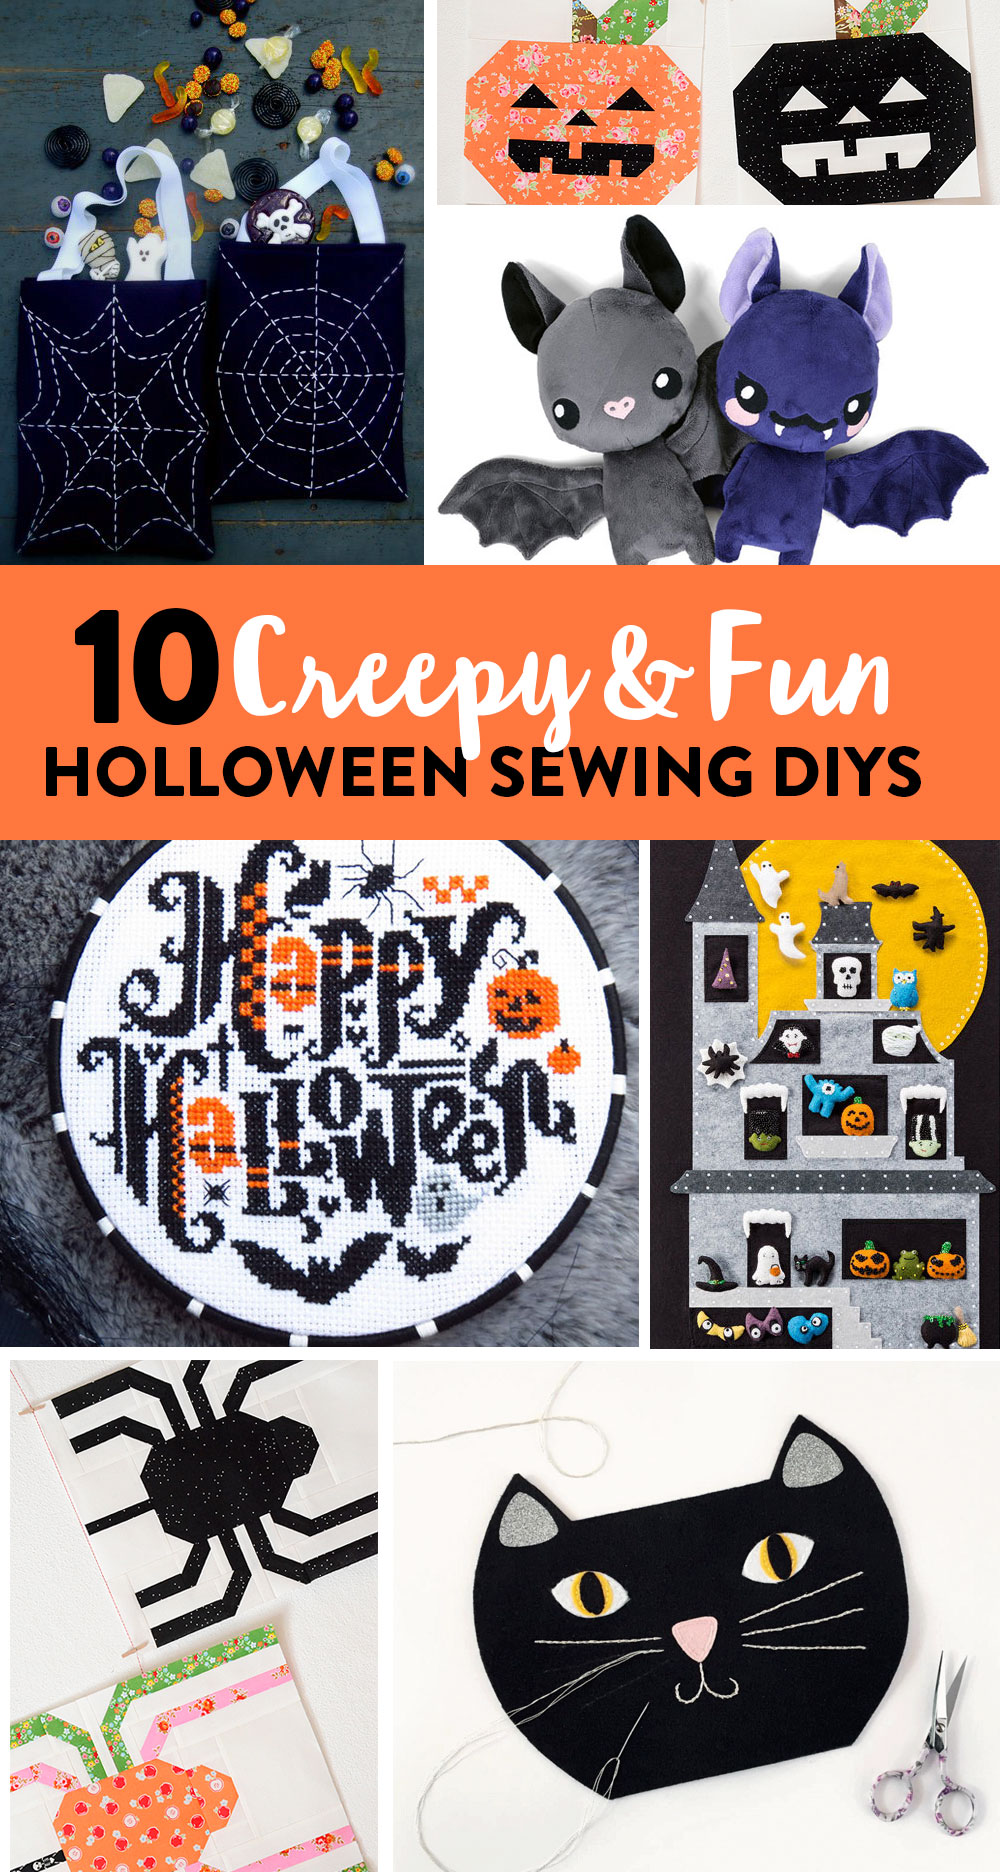 Halloween-Sewing-DIY